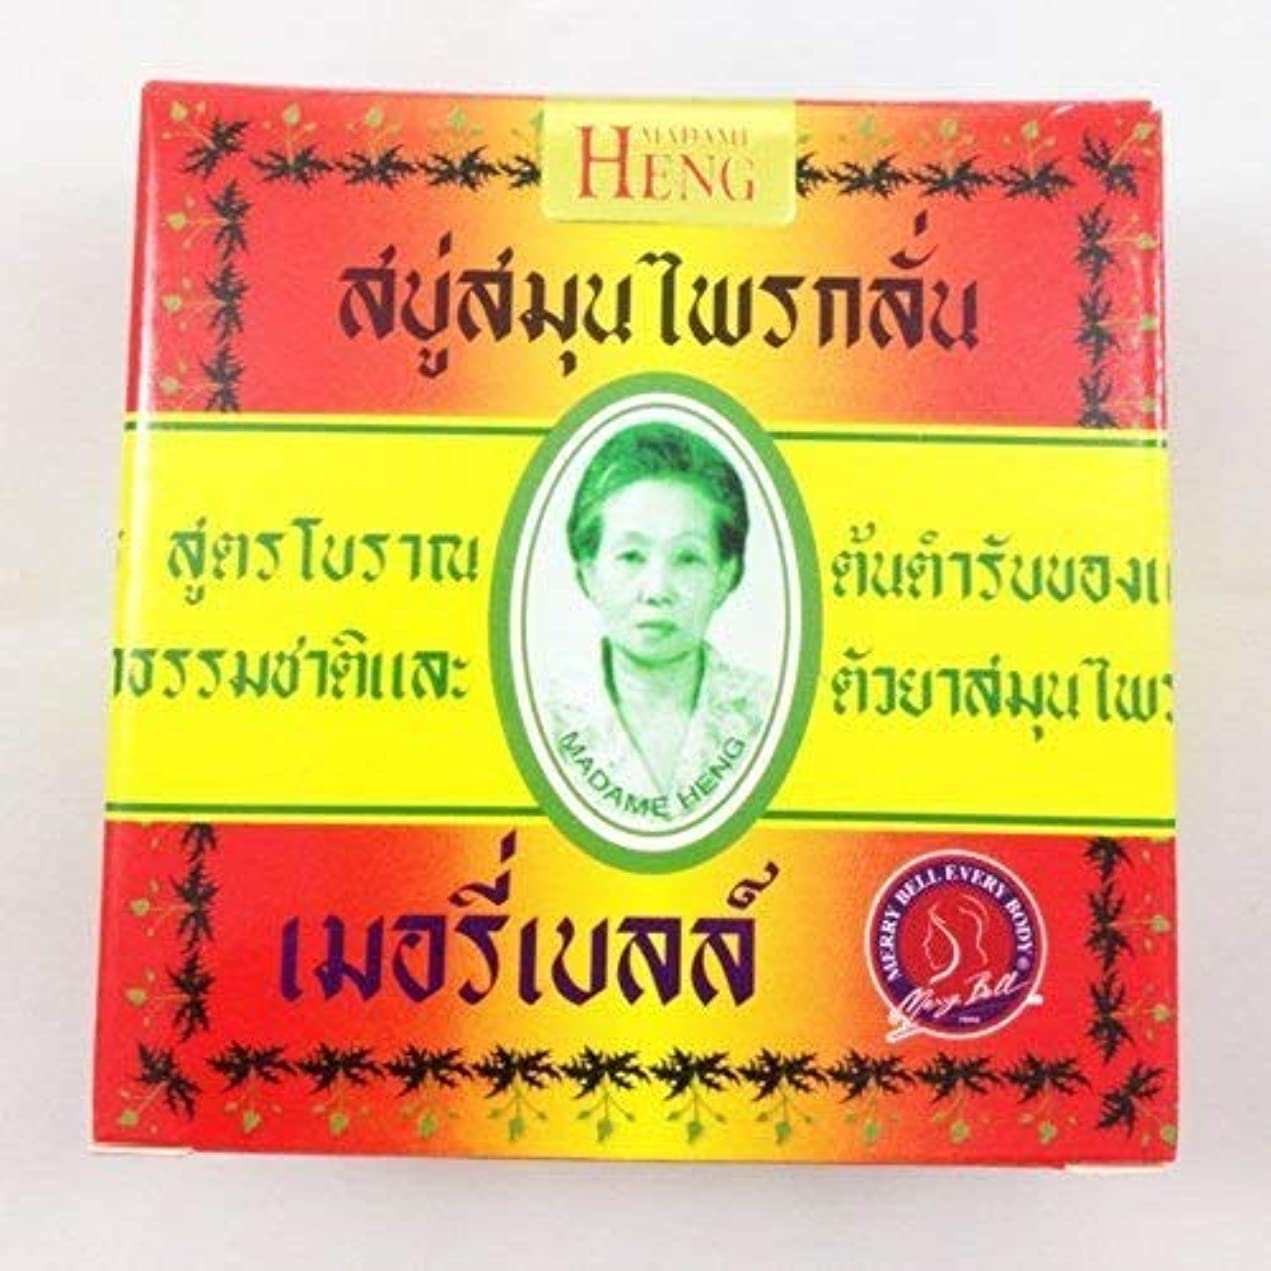 熟読するラジウム取得Madame Heng Thai Original Natural Herbal Soap Bar Made in Thailand 160gx2pcs by Ni Yom Thai shop